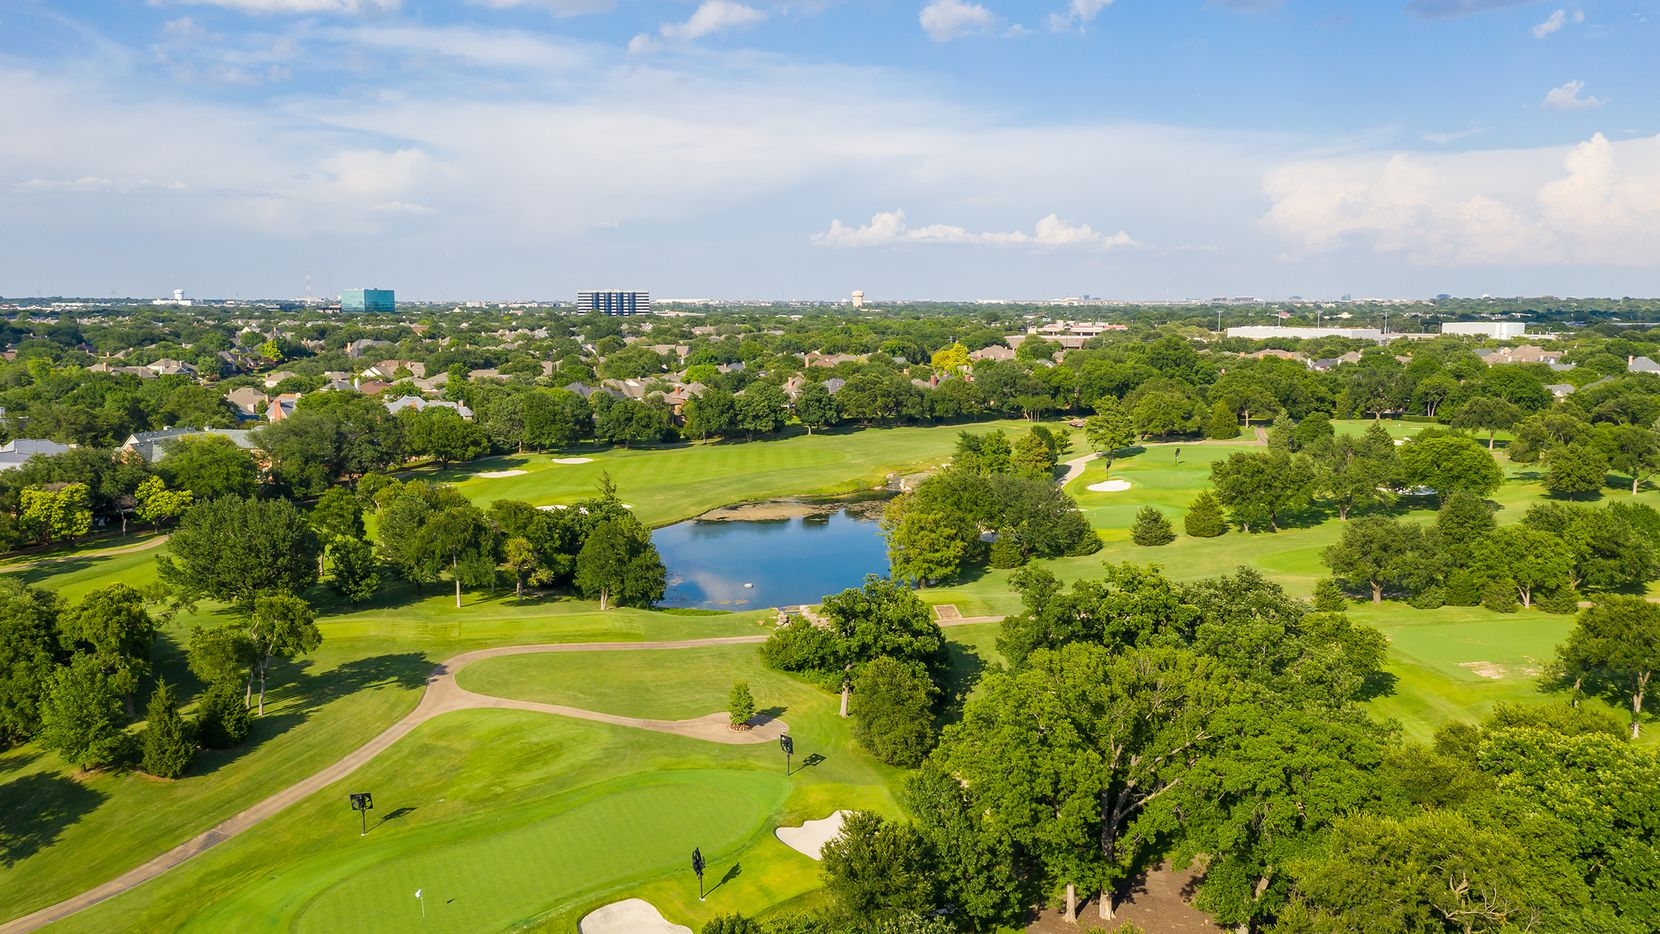 The half-acre home at 5403 Preston Fairways Circle in Dallas offers golf course views and 4,707 square feet of living space.